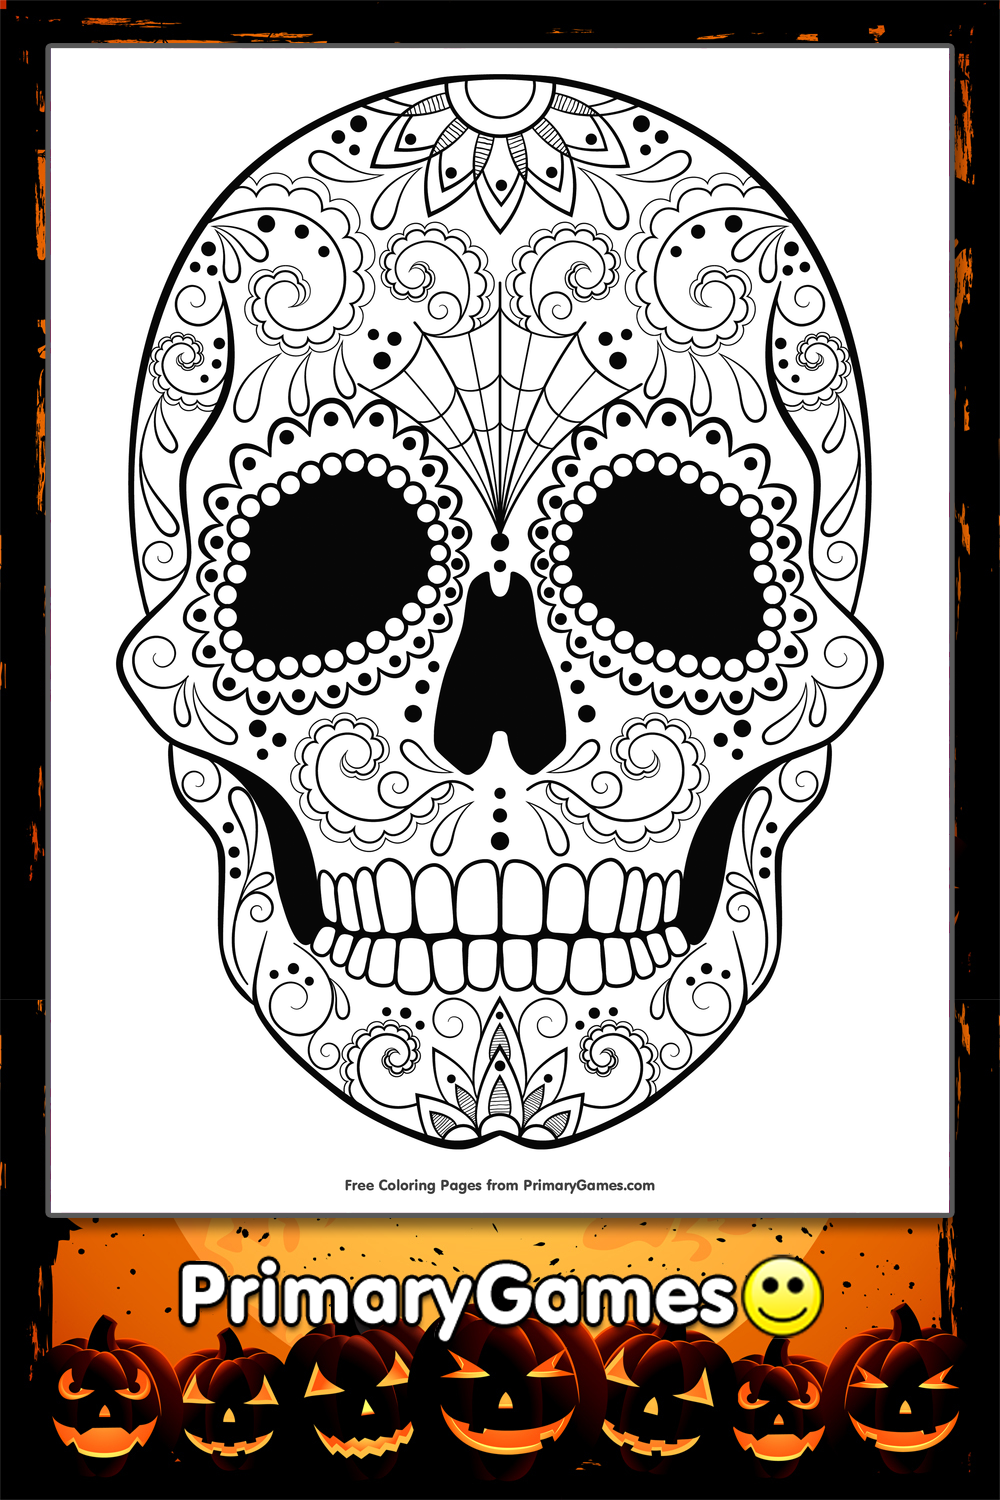 11 Candy Skull further Post spooky Writing Font 334578 furthermore How To Draw A House In Houses Coloring Page besides Nightmare Before Christmas Jack In Box in addition 4135. on scary birthday pic